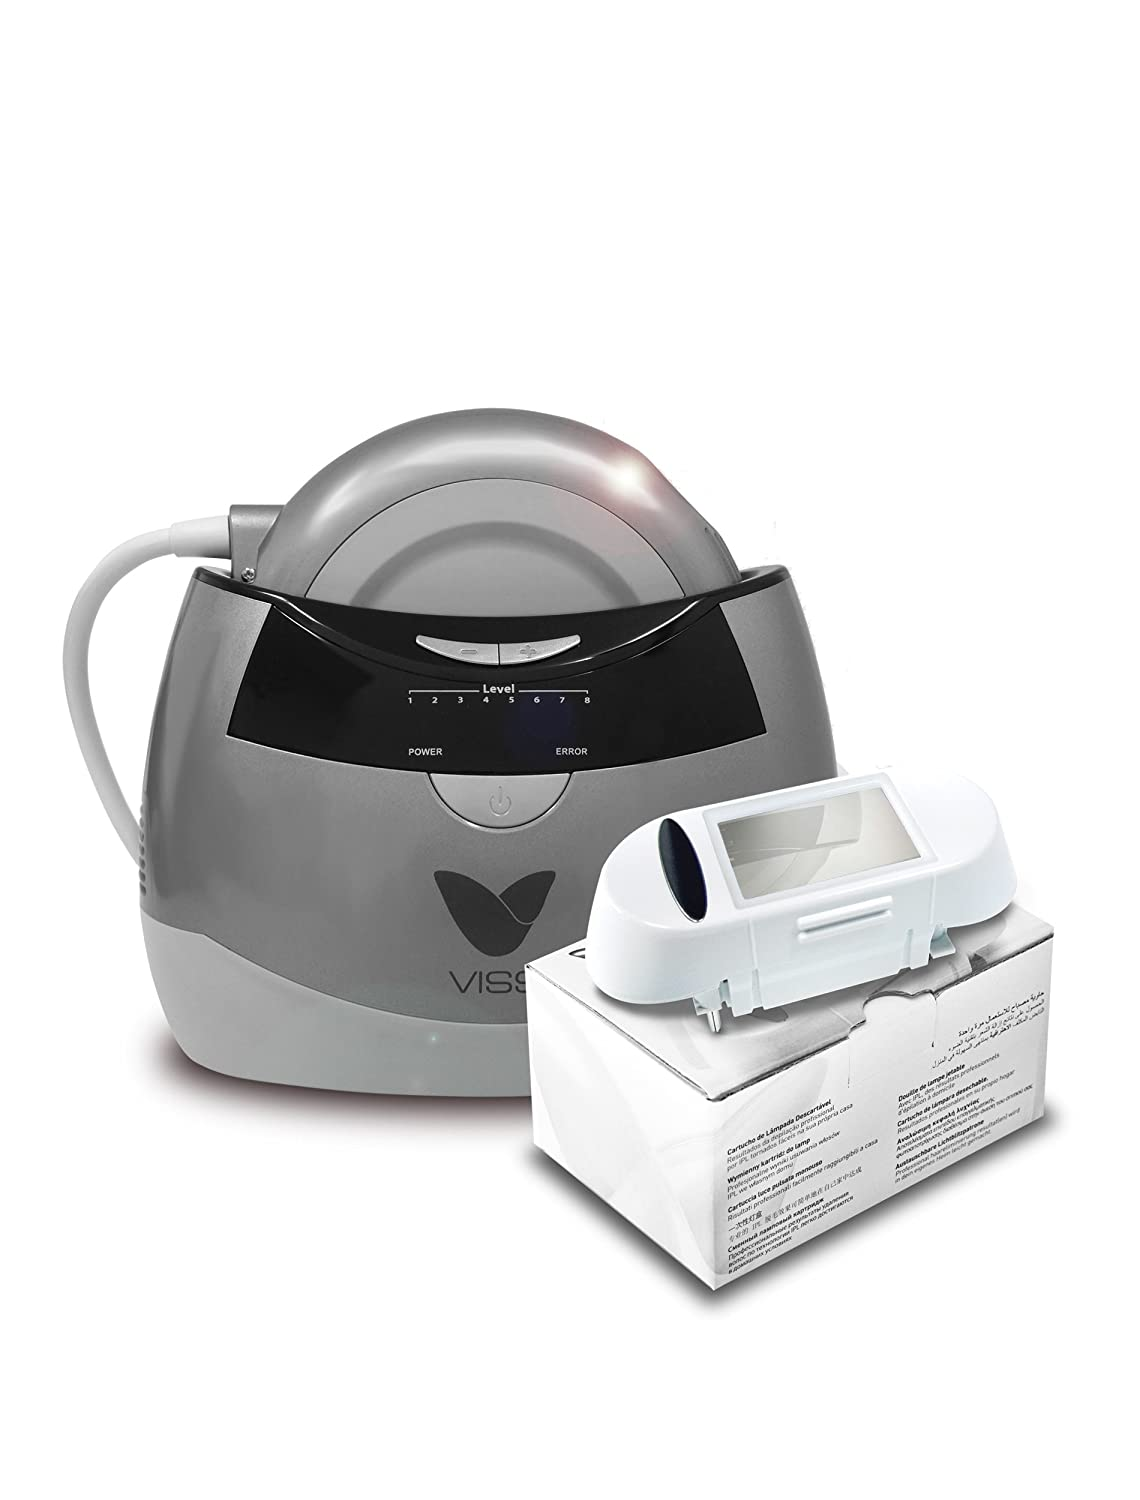 VISS Advanced at Home IPL Hair Removal System